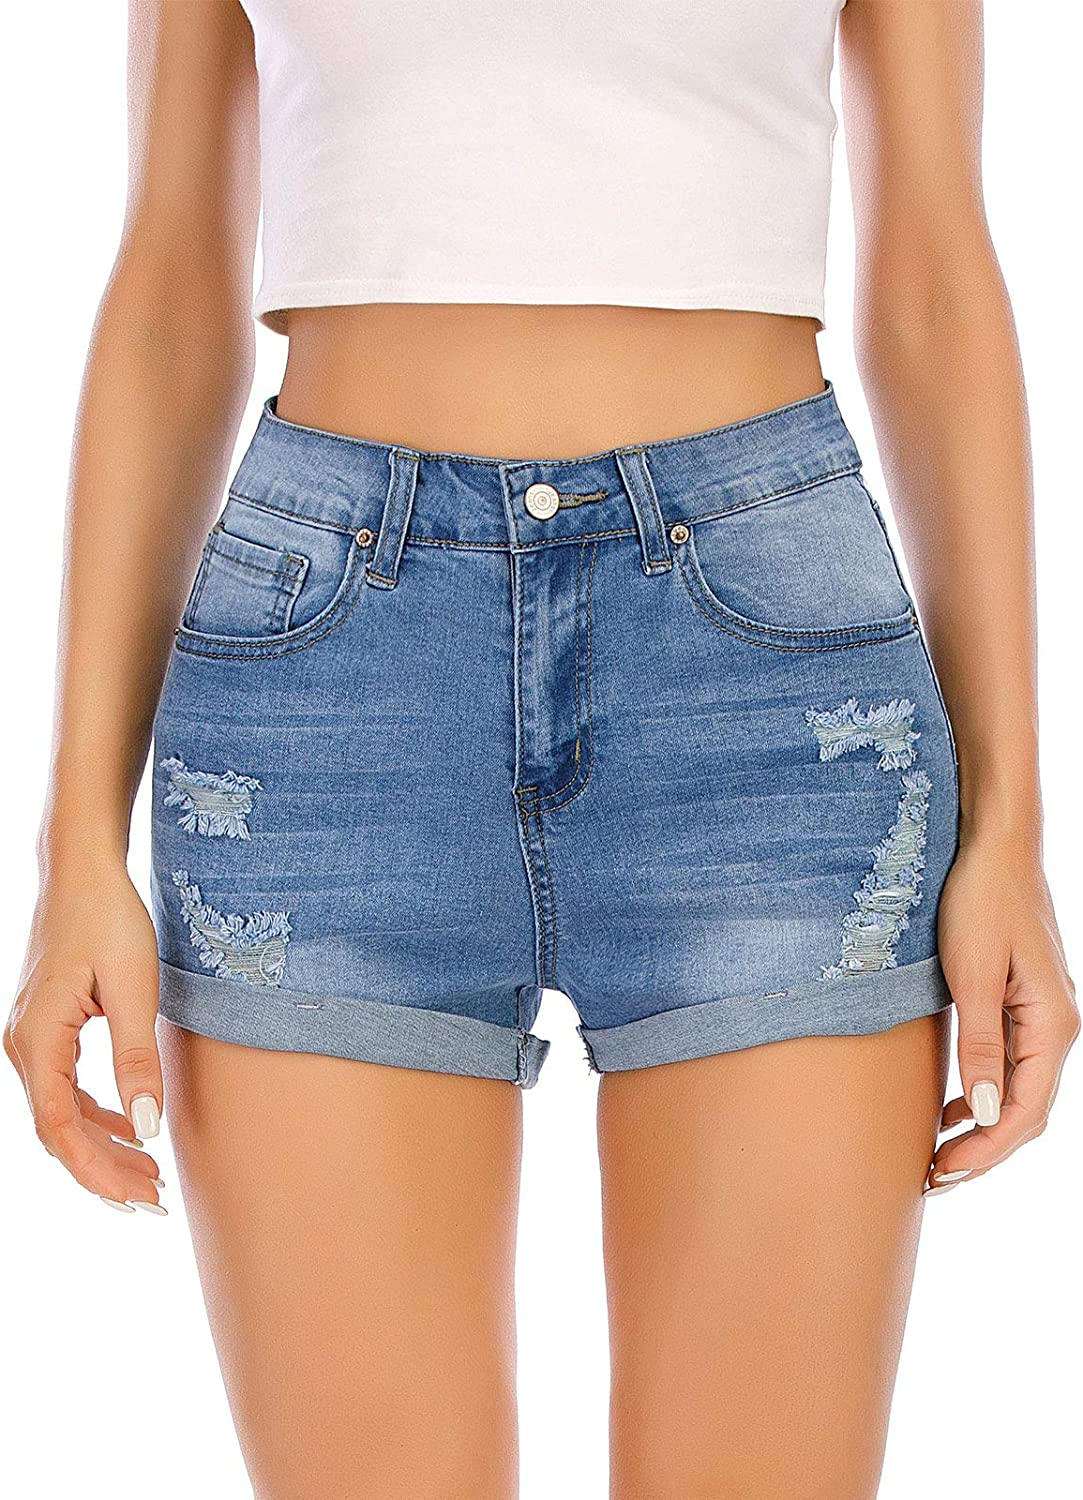 AMCLOS Womens Casual Denim Shorts High Waist High Stretchy Skinny Ripped Hole Distressed Jean with Pockets